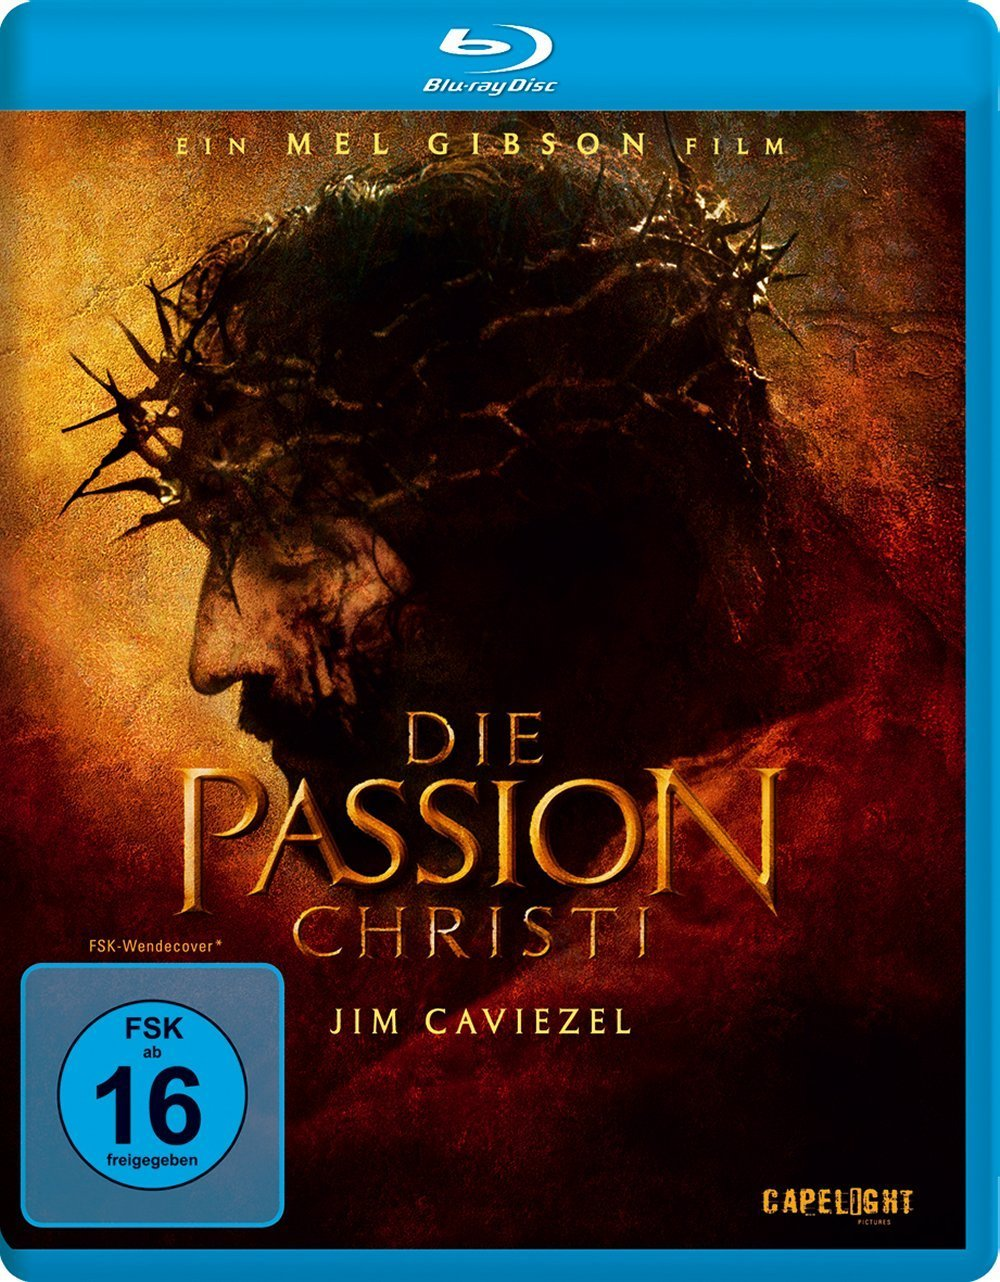 Die Passion Christi Tv